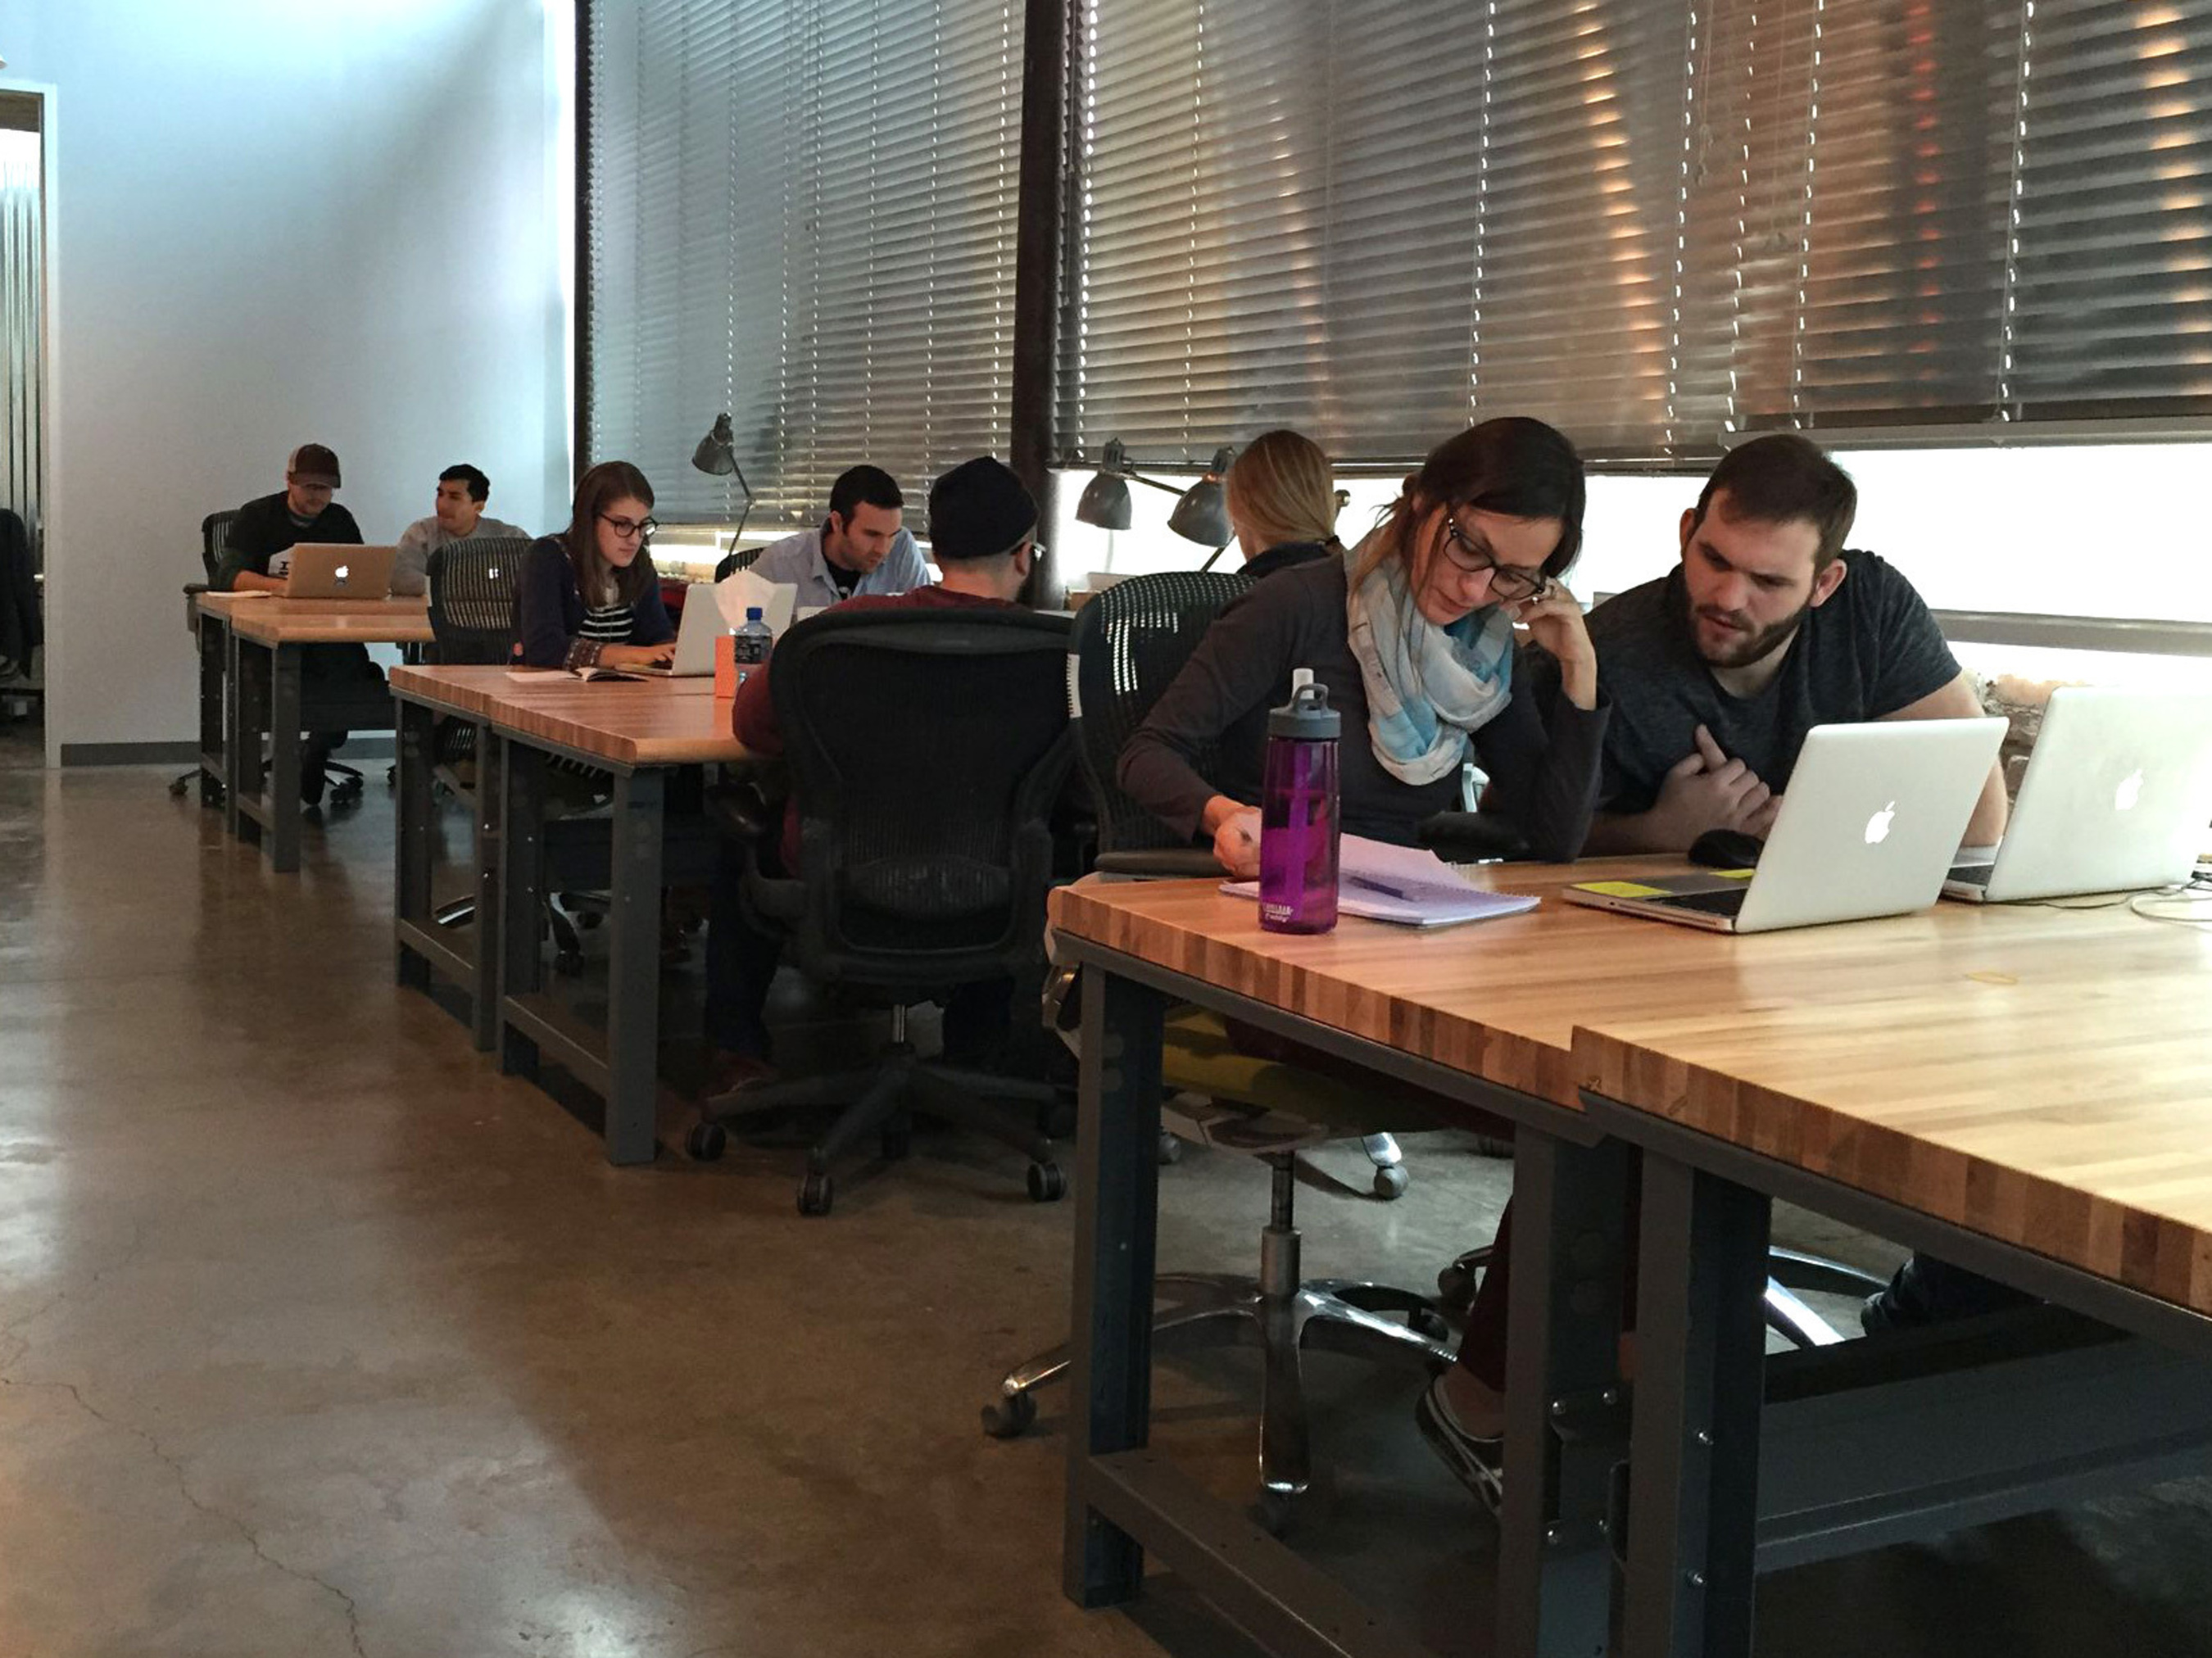 The Iron Yard teaches people cutting-edge tech skills and helps them launch careers in technology. They offer courses across a variety of disciplines and locations.